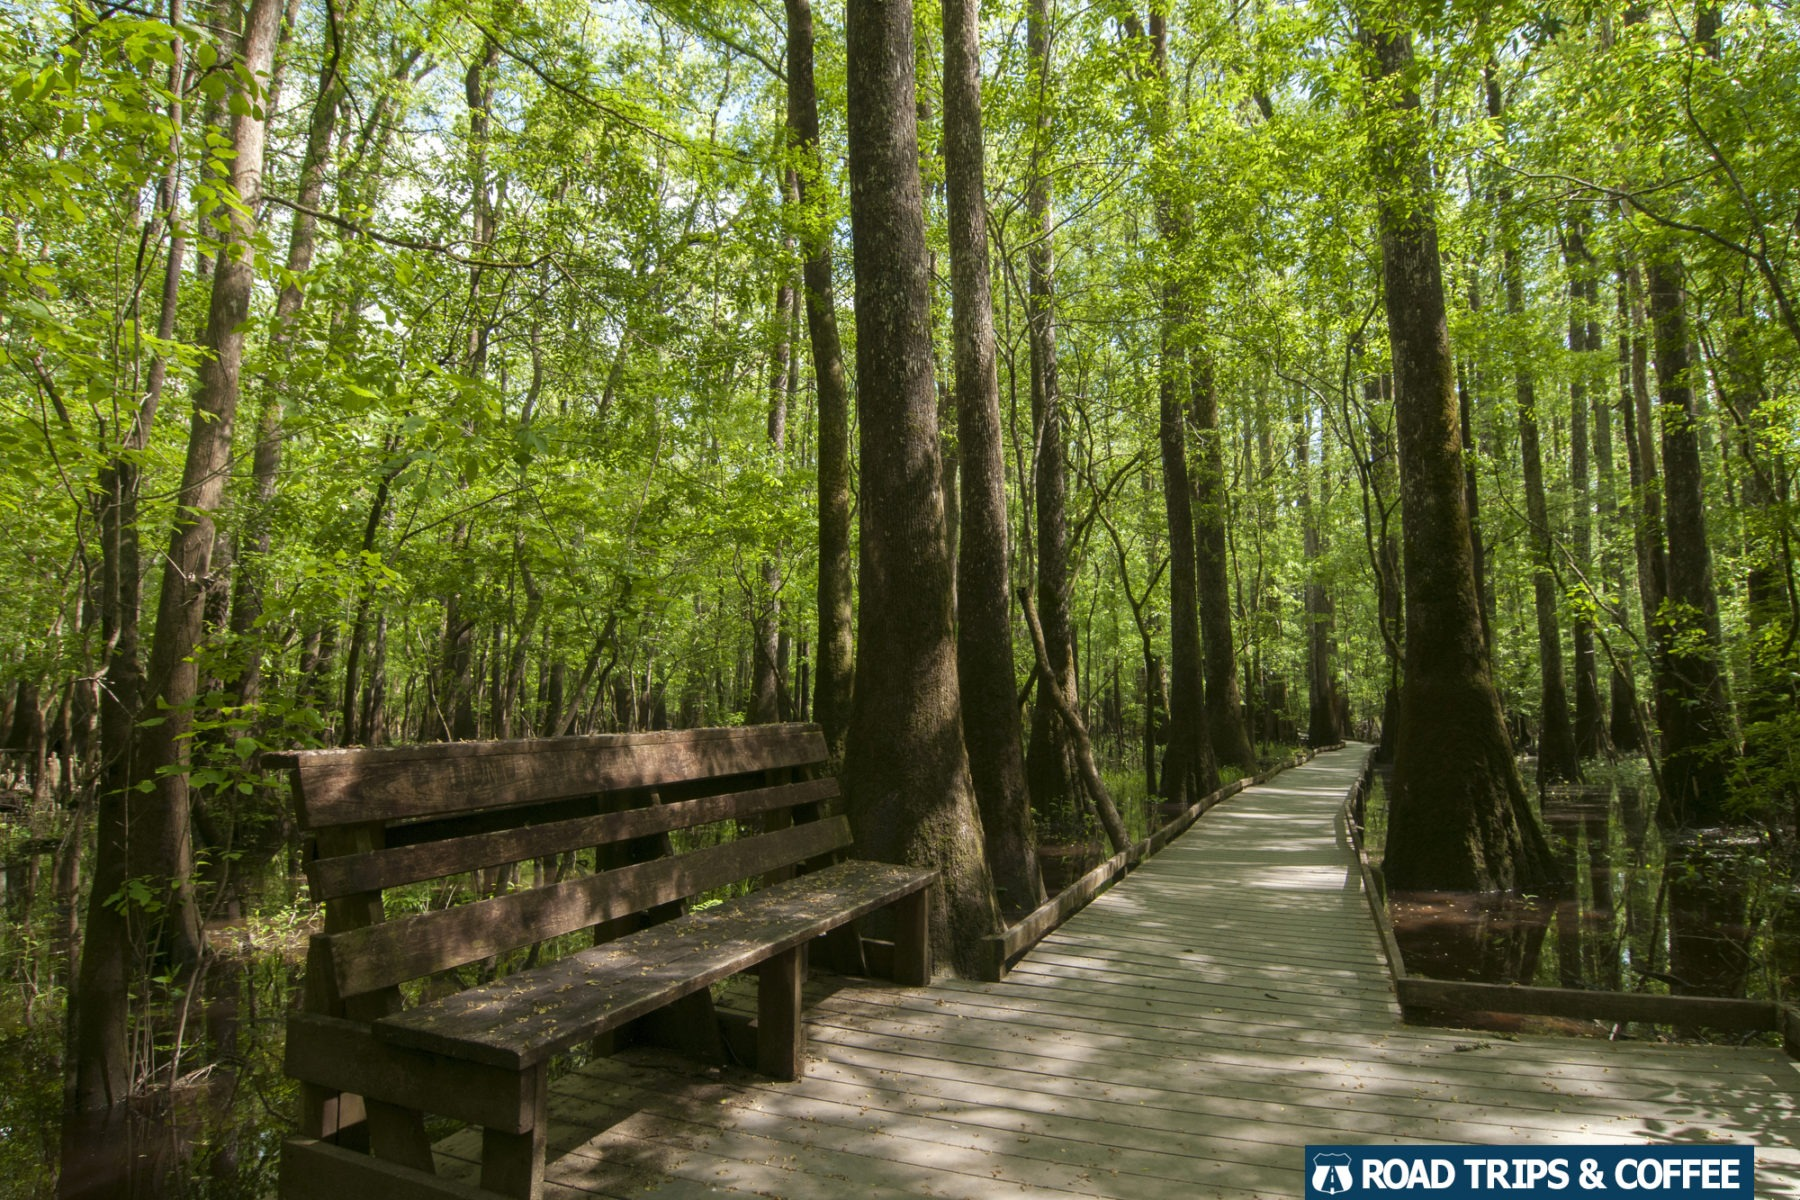 A bench along the wooden Boardwalk Loop Trail at Congaree National Park in South Carolina